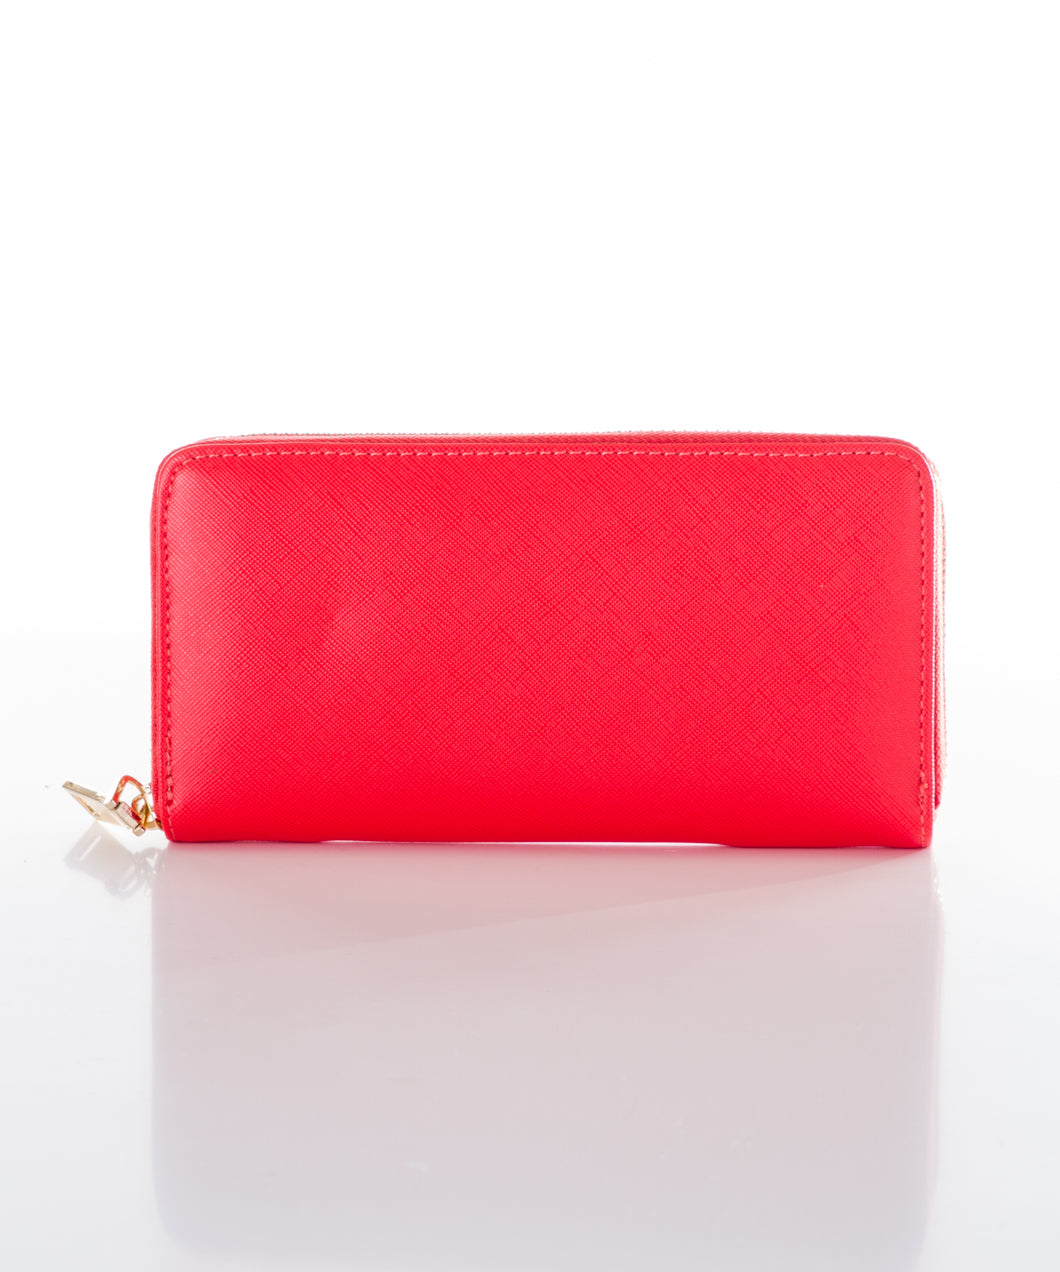 Sweetgum Georgia Purse in Red